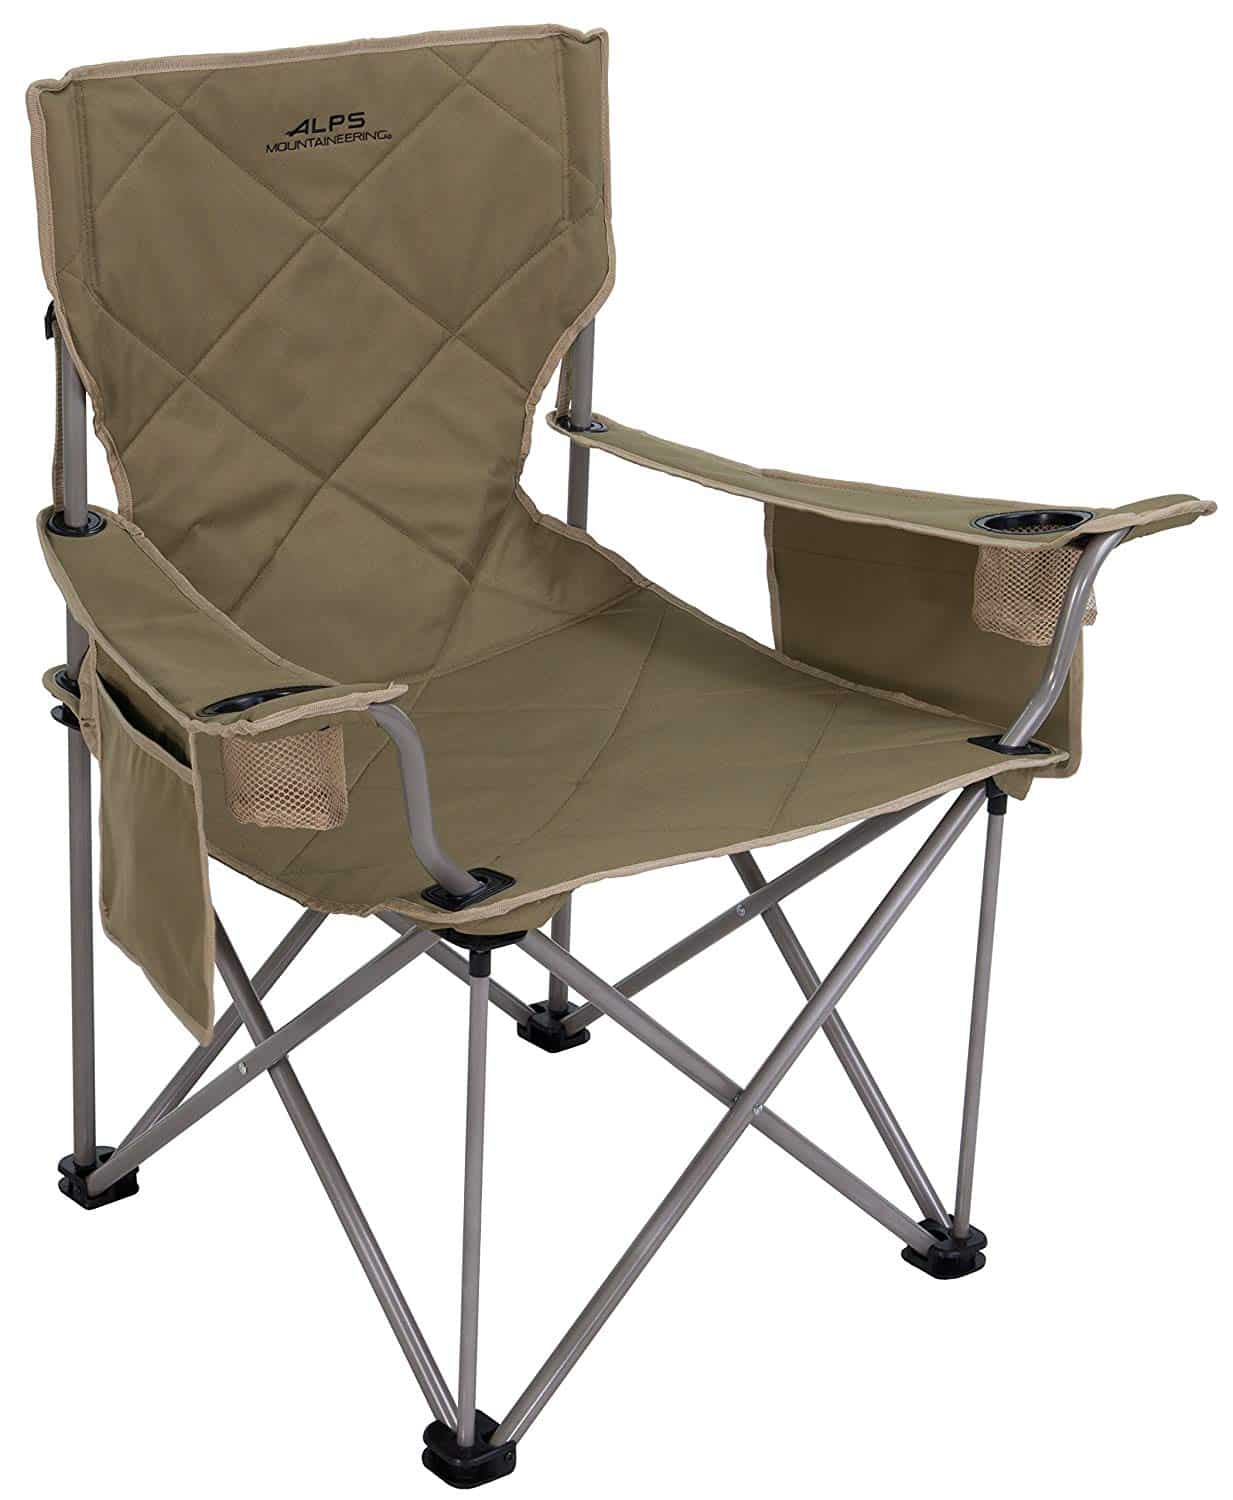 4. ALPS Mountaineering King Kong Lawn Chair